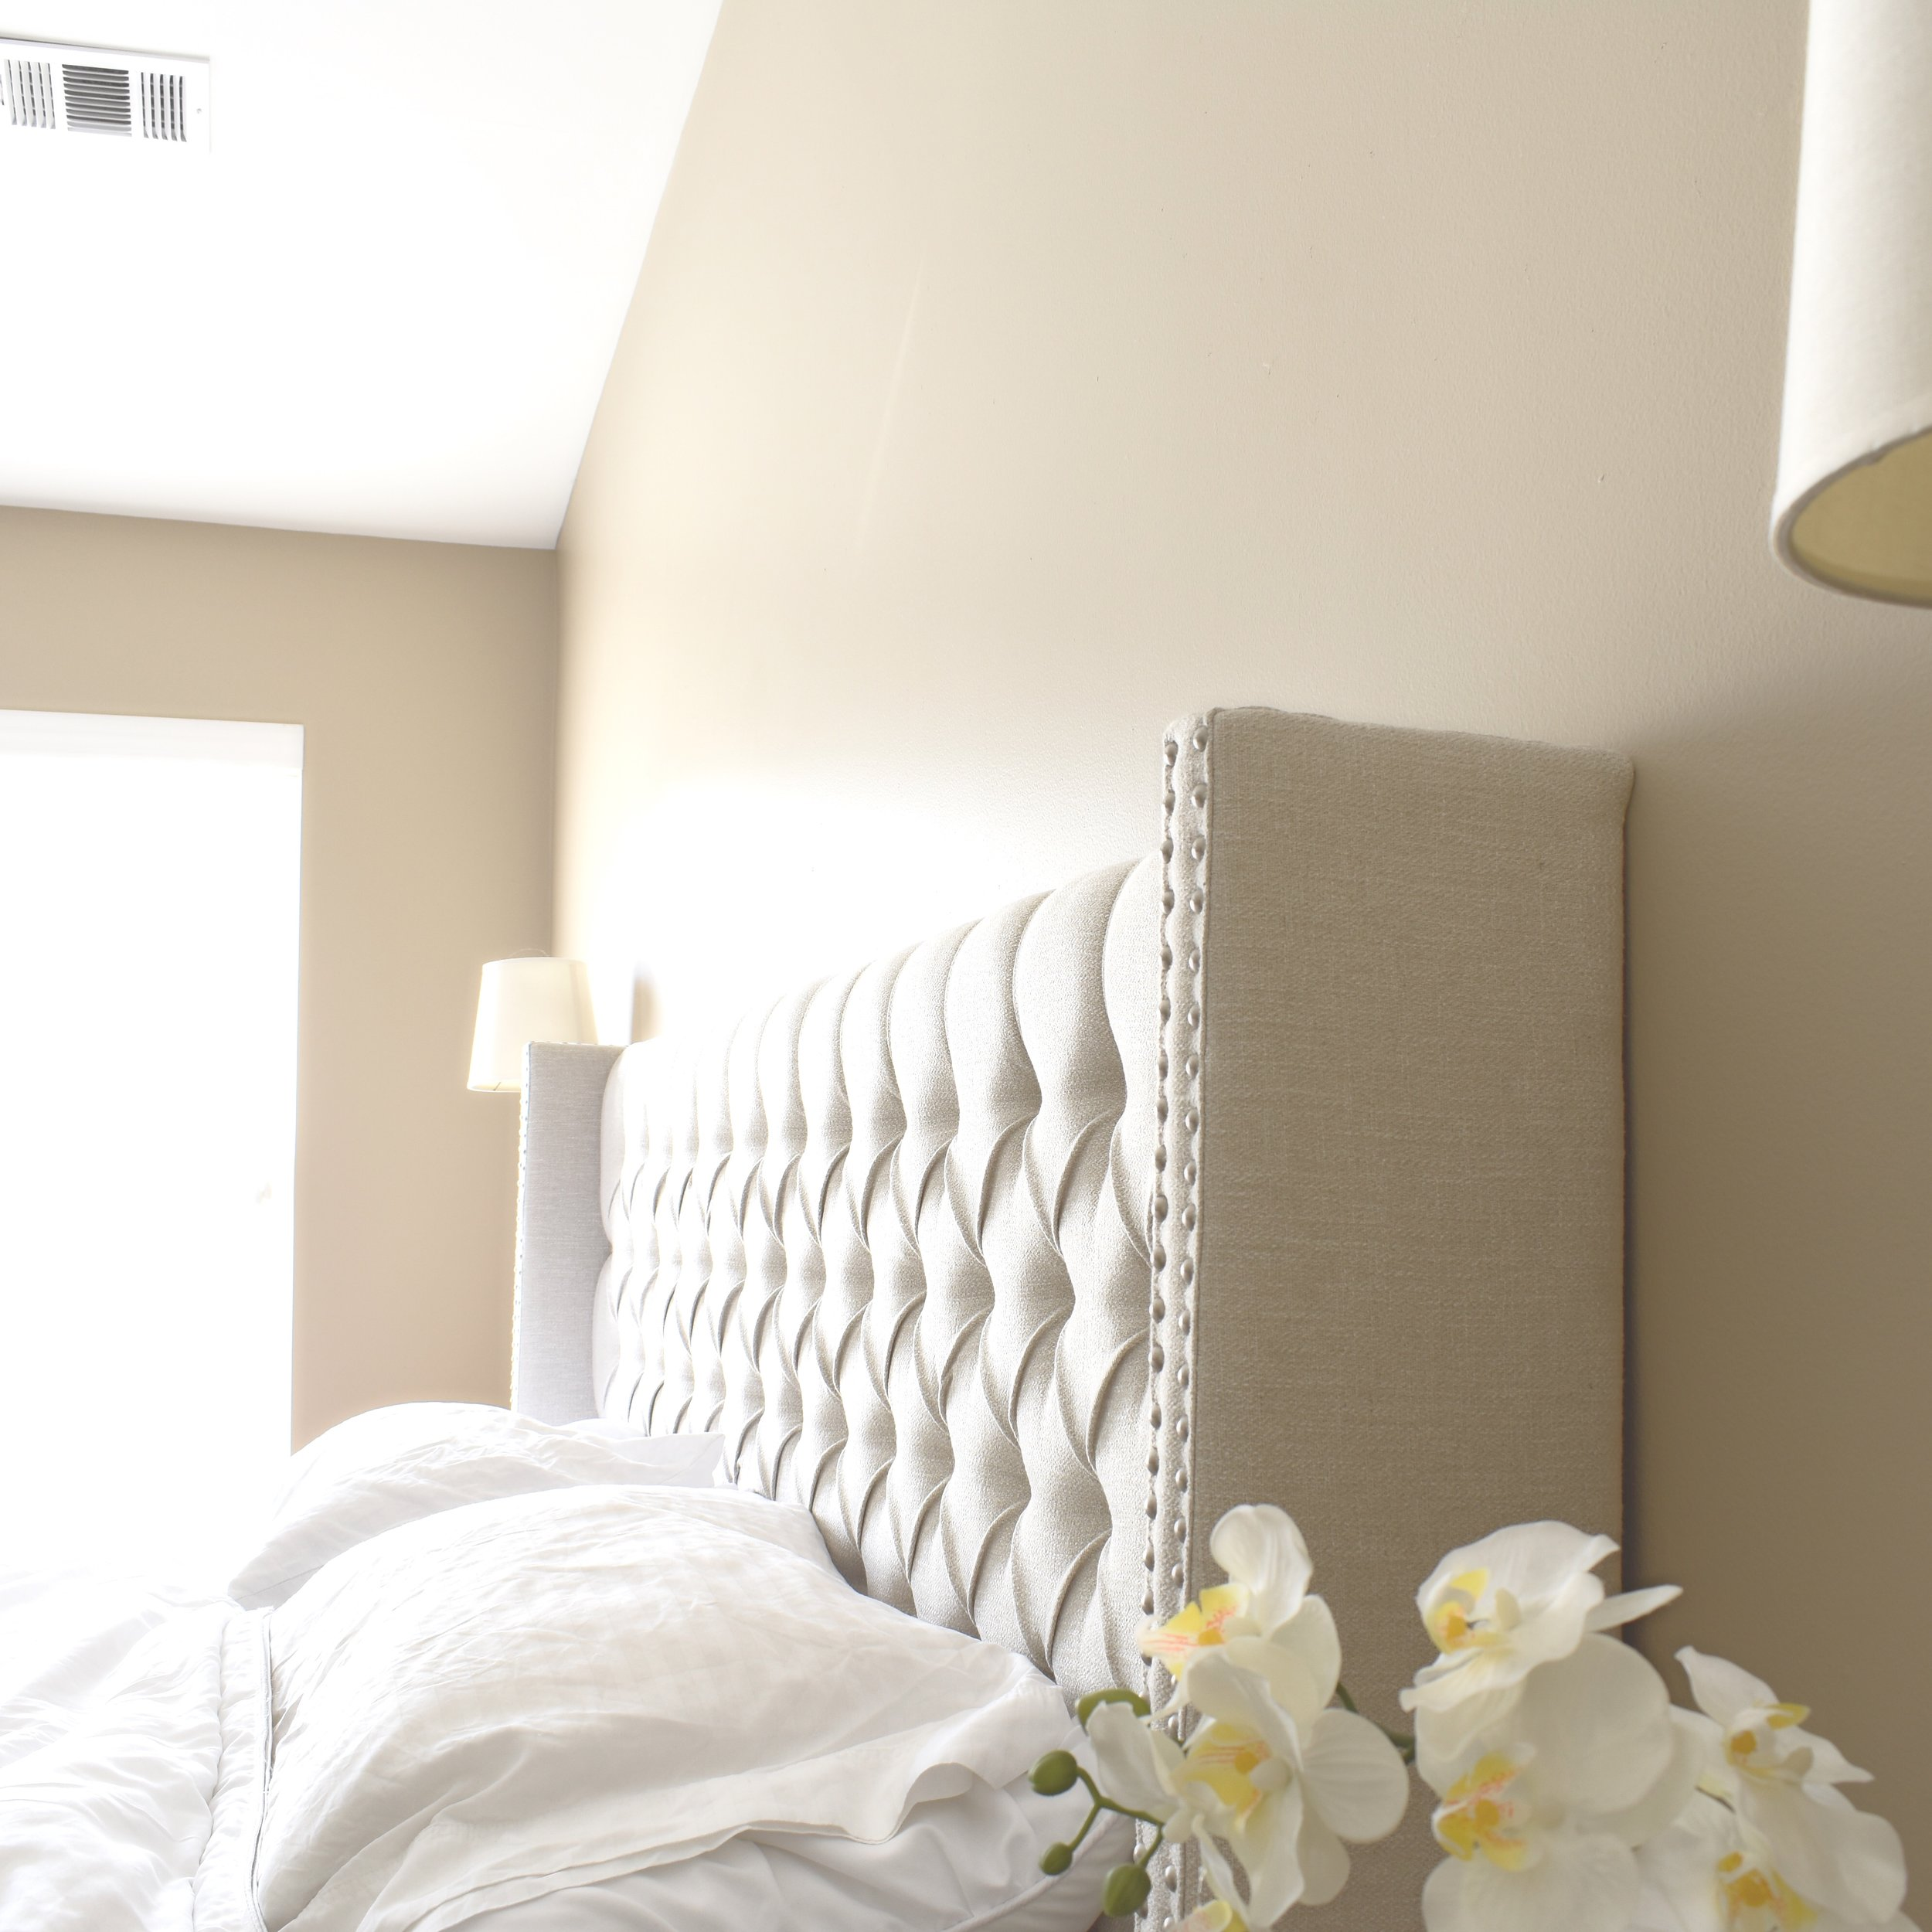 neutral master bedroom with tufted headboard and wall sconcesJPG